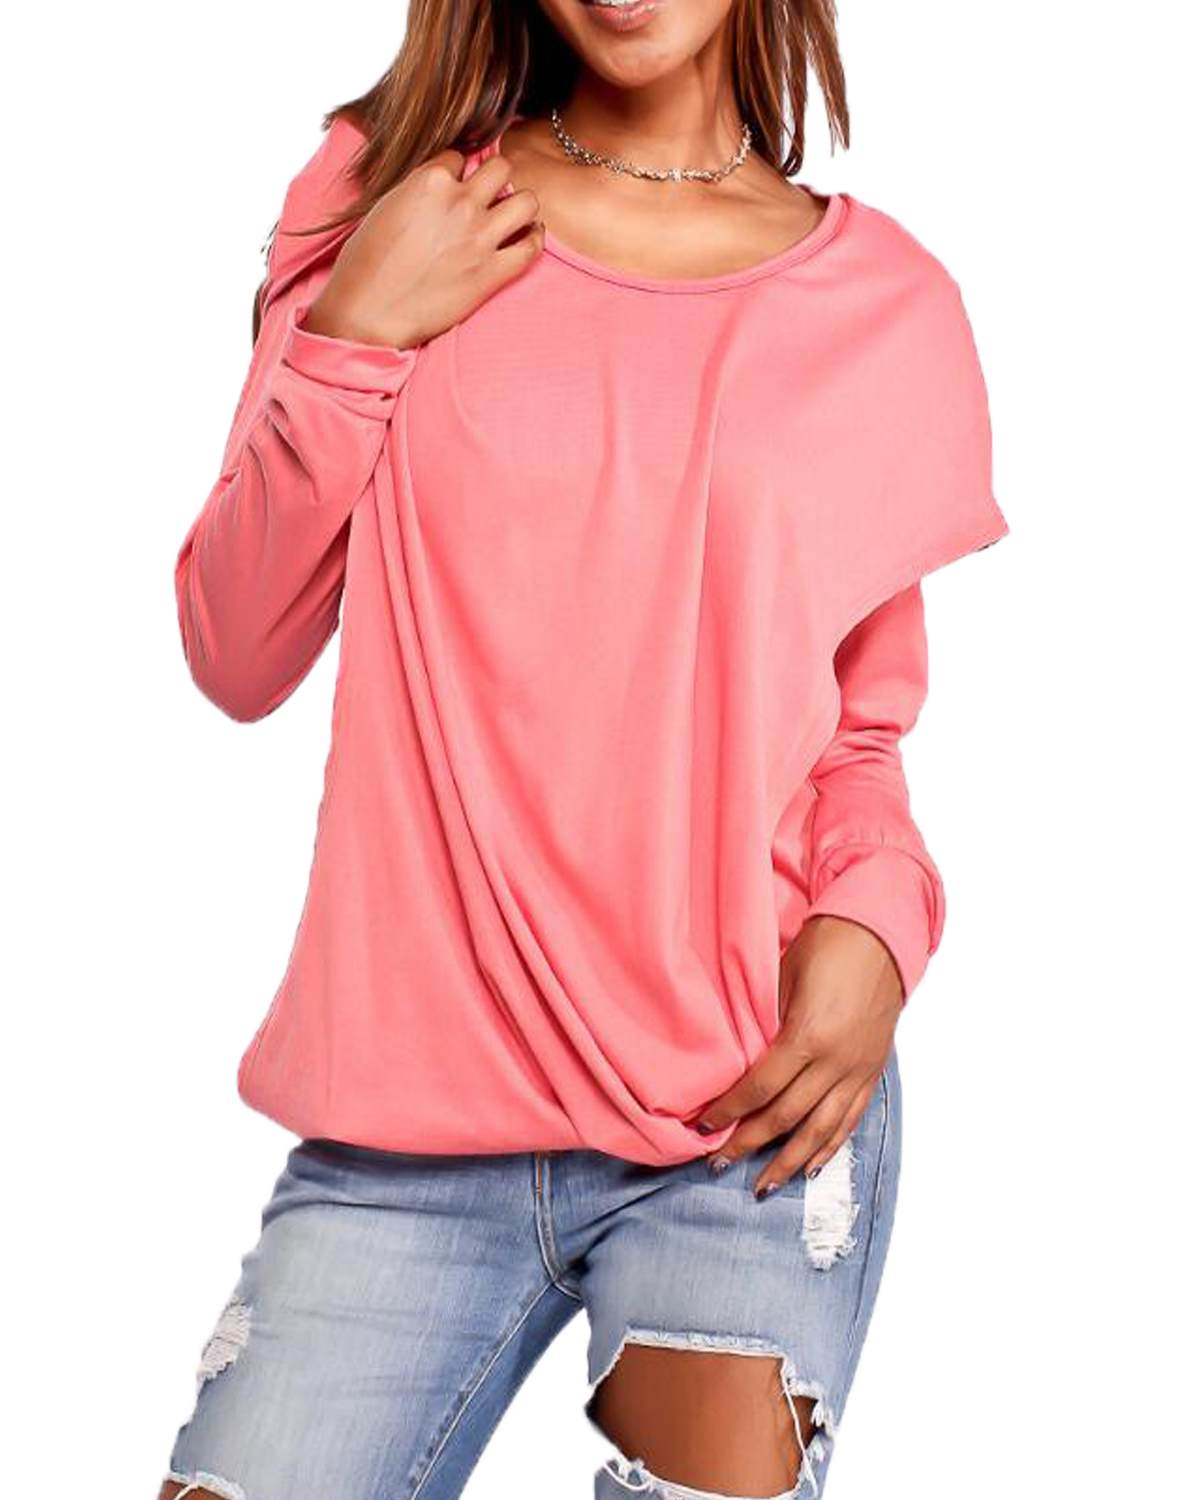 Women Pullover Hooded T-Shirts ZANZEA 2019 Spring Casual Loose Solid Round Neck Long Sleeve Tops Tees With Pockets Plus Size 2xl